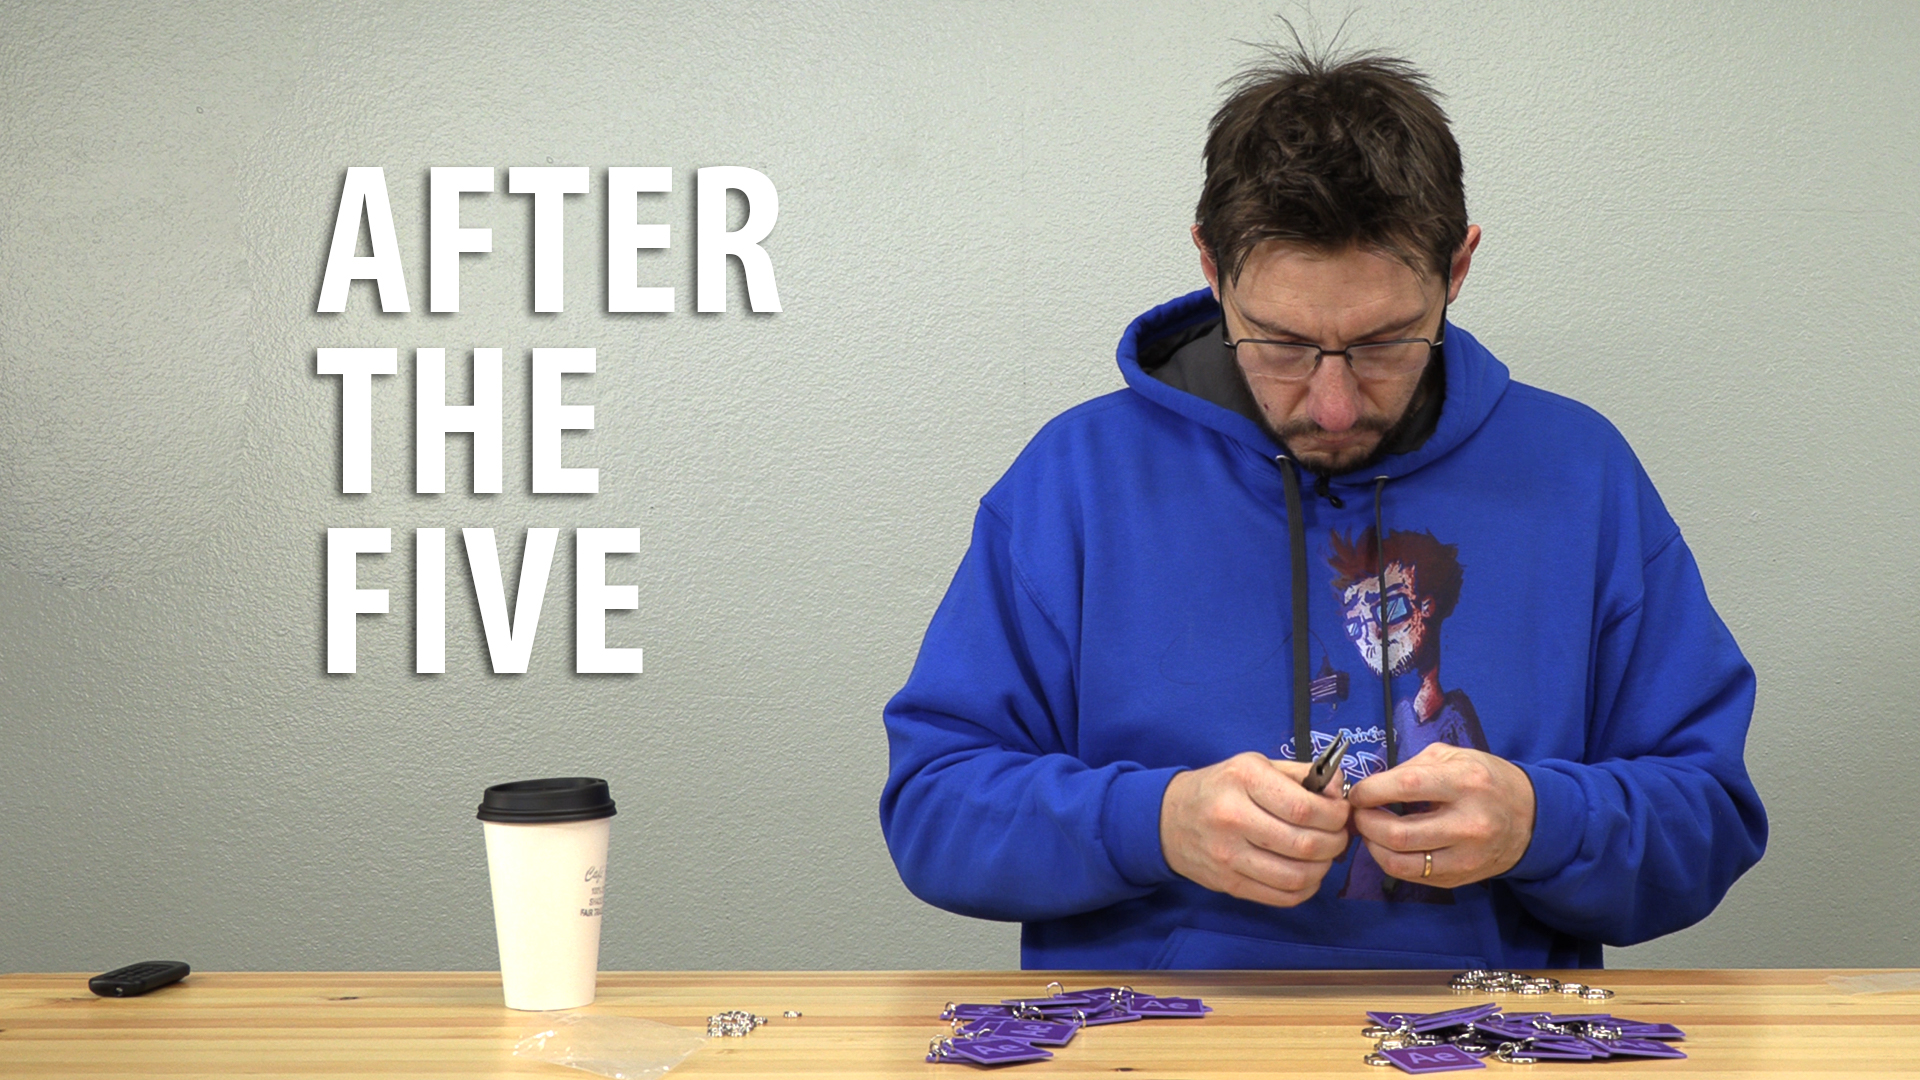 After The Five – After Effects Keychains